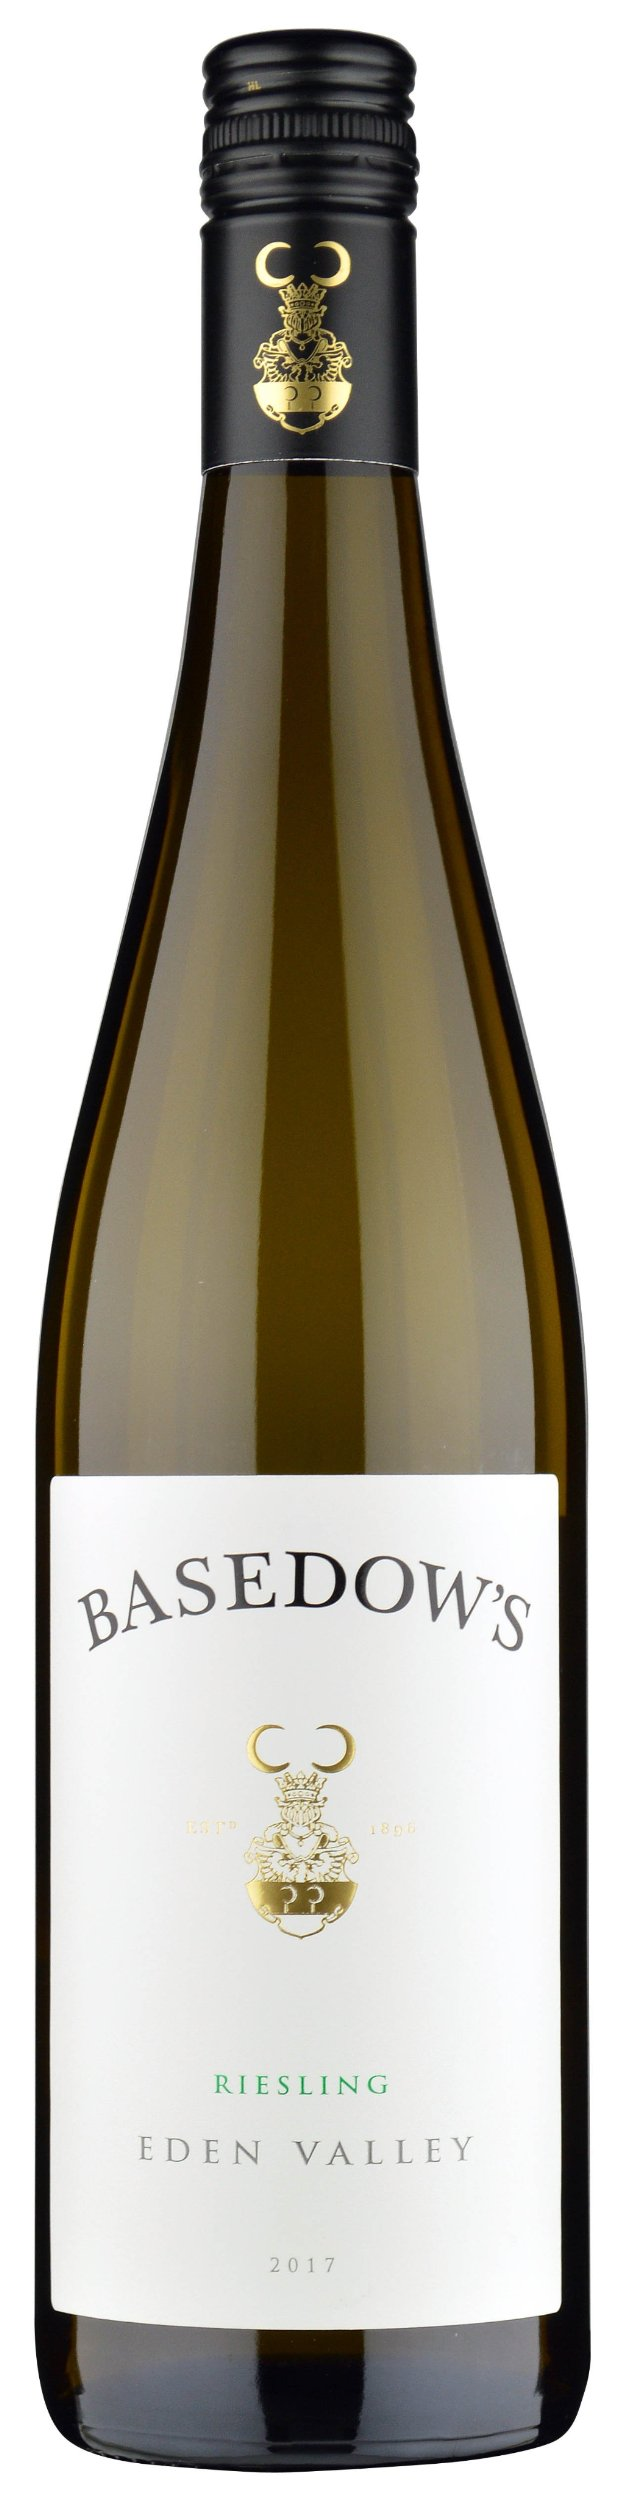 Basedow's Eden Valley Riesling 2017